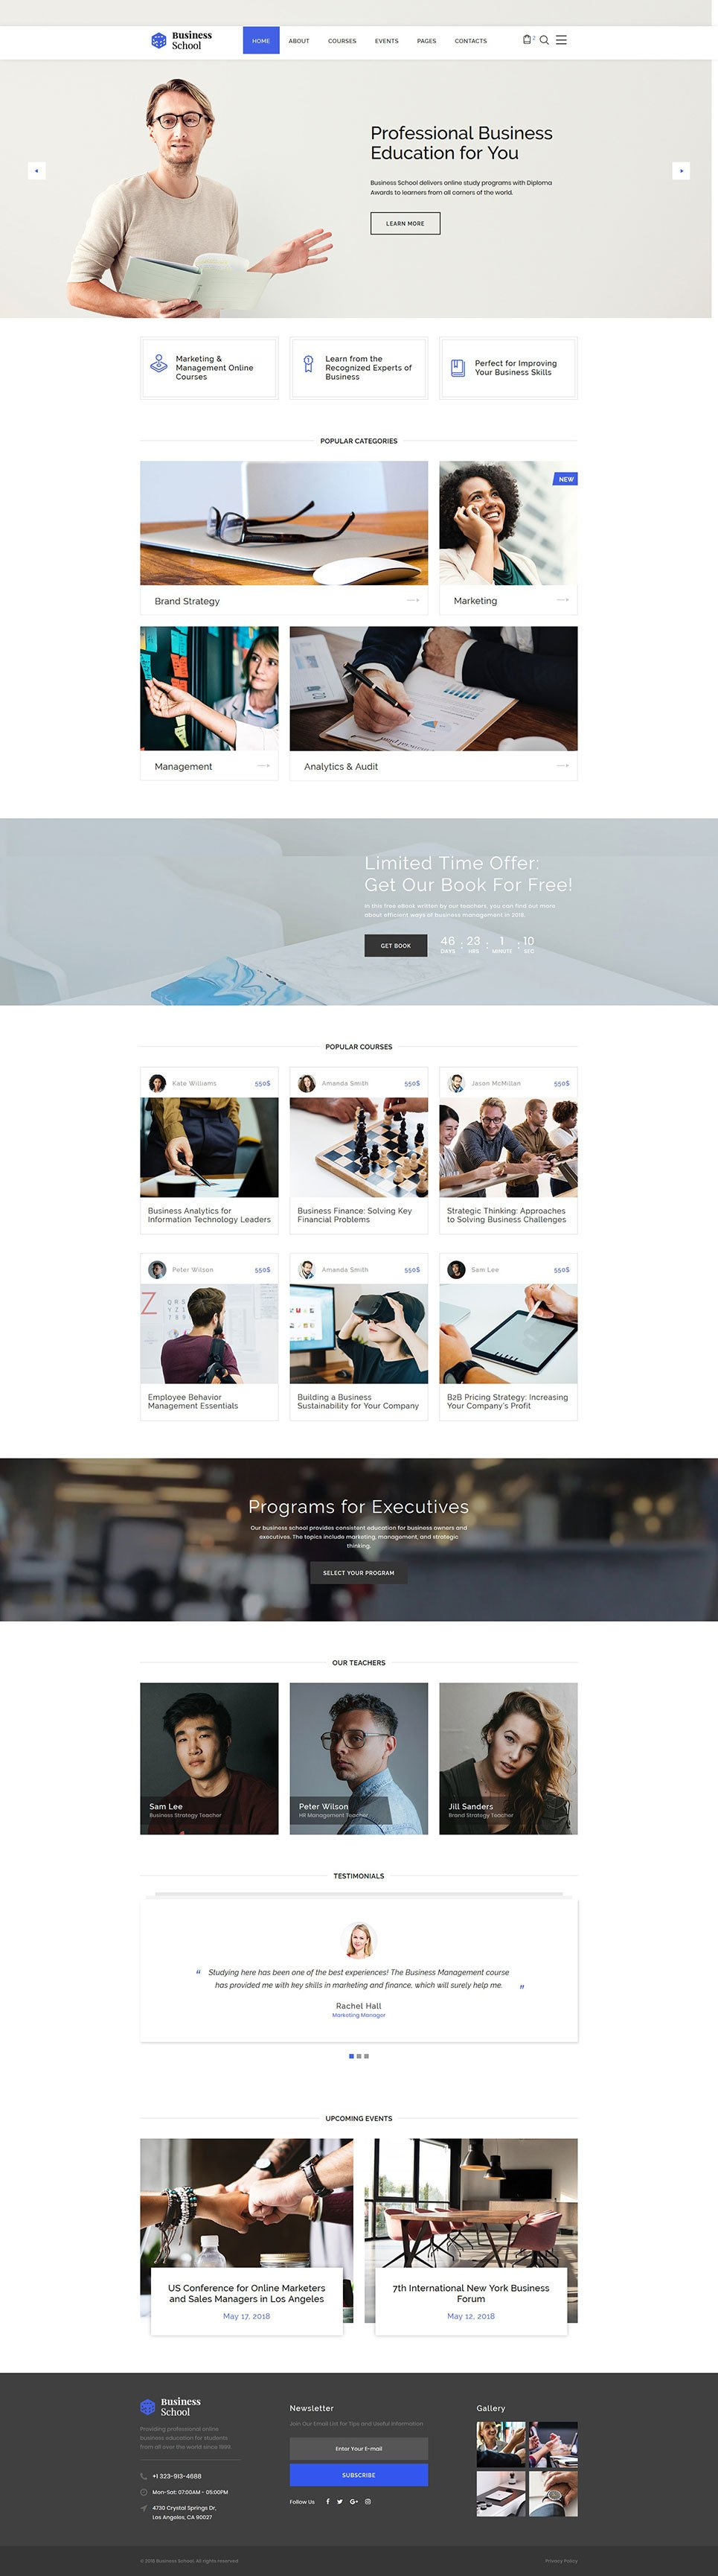 Business School Responsive Website Template New Screenshots BIG